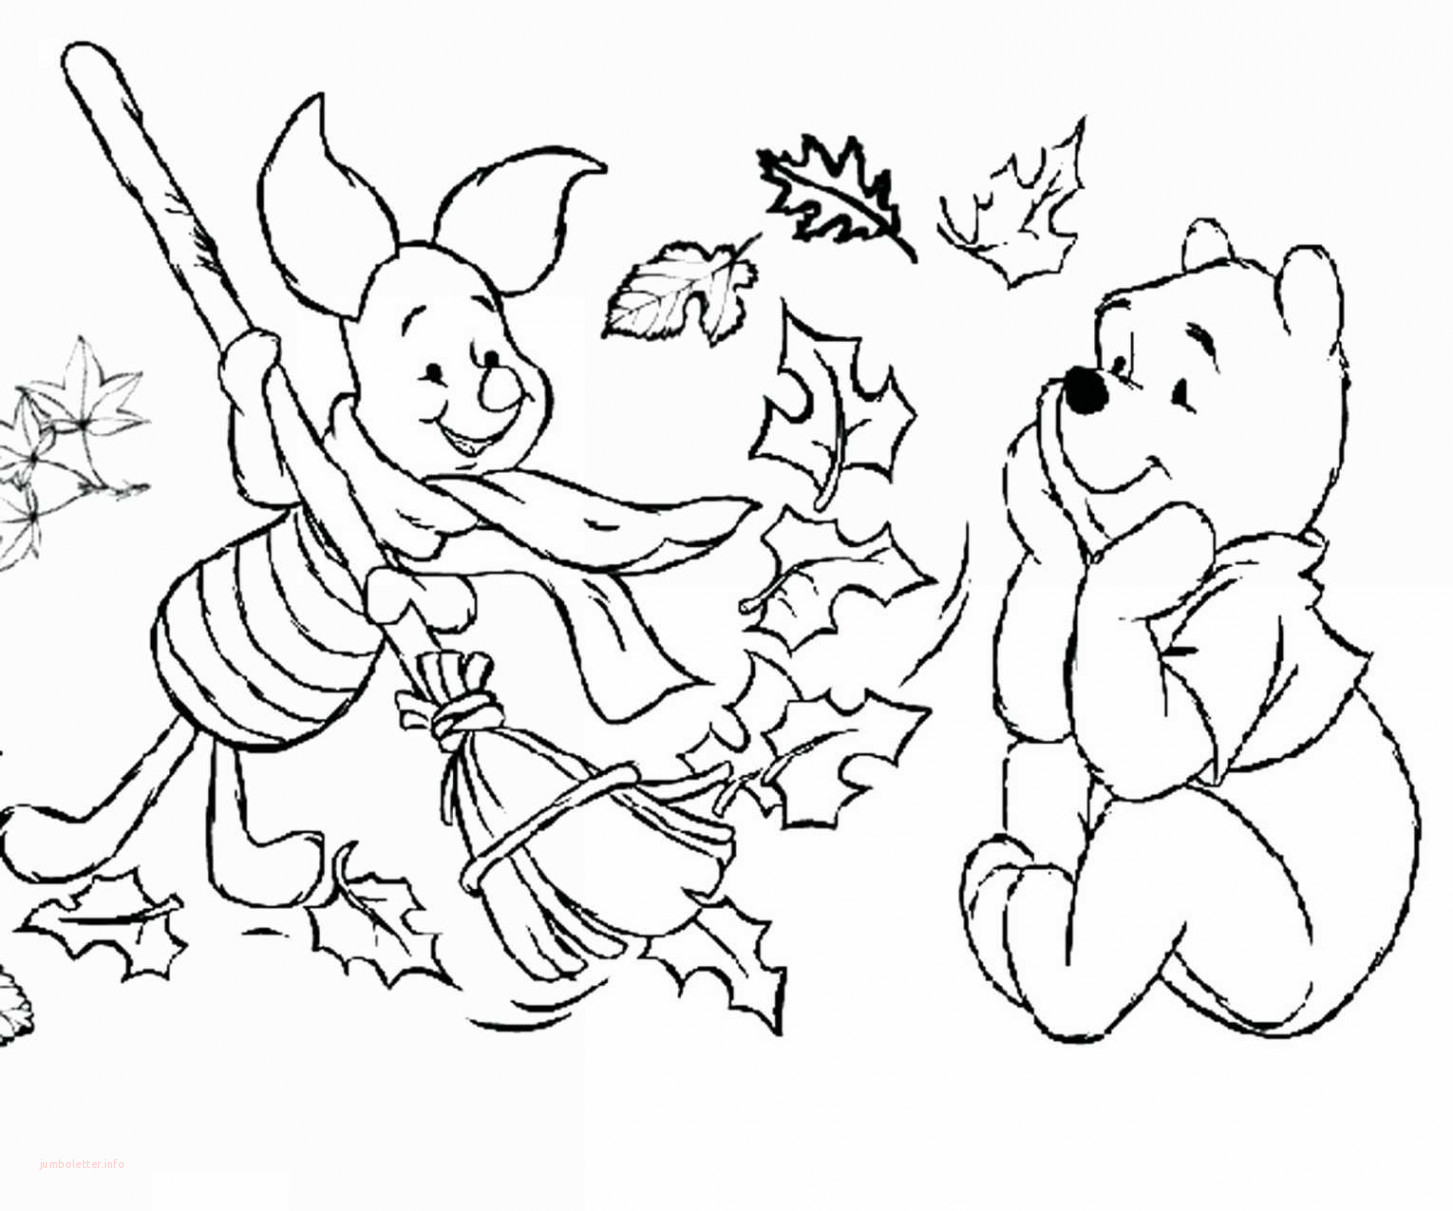 Cub Scout Coloring Pages  Gallery 12p - Free For Children